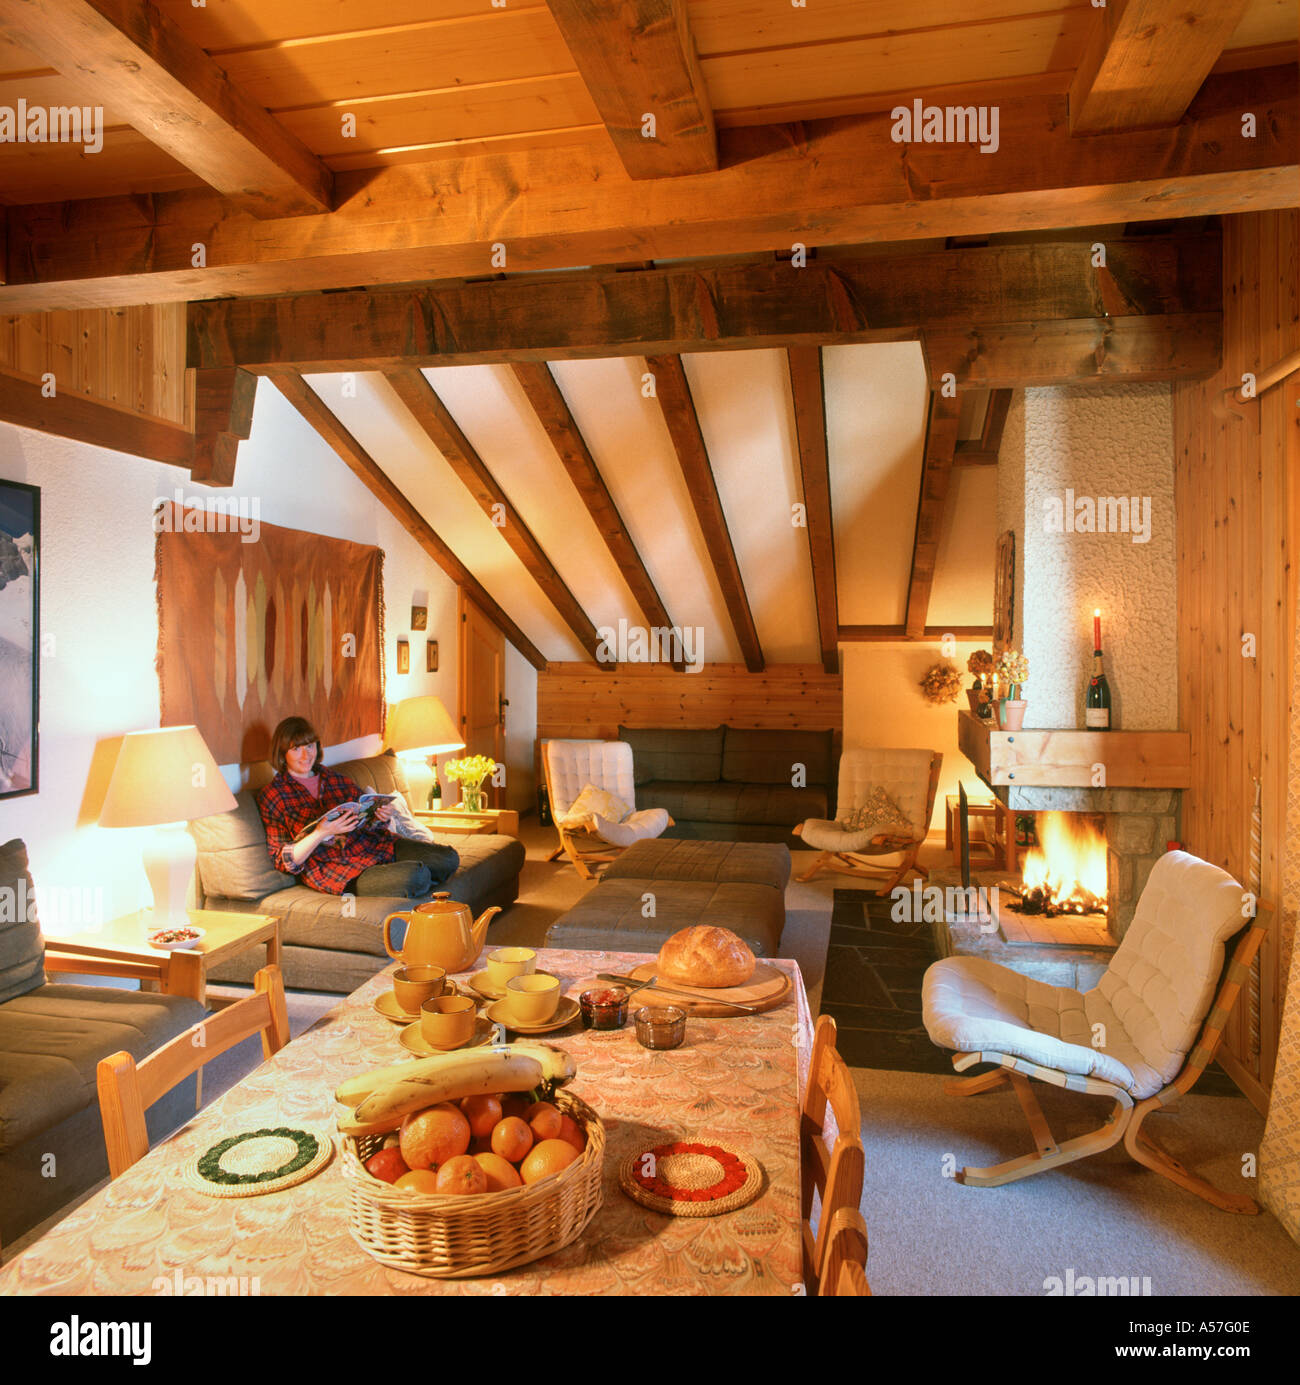 Post And Beam Afternoon Tea In Traditional Ski Chalet Verbier Bernese Alps Switzerland The Times Afternoon Tea In Traditional Ski Chalet Verbier Bernese Alps